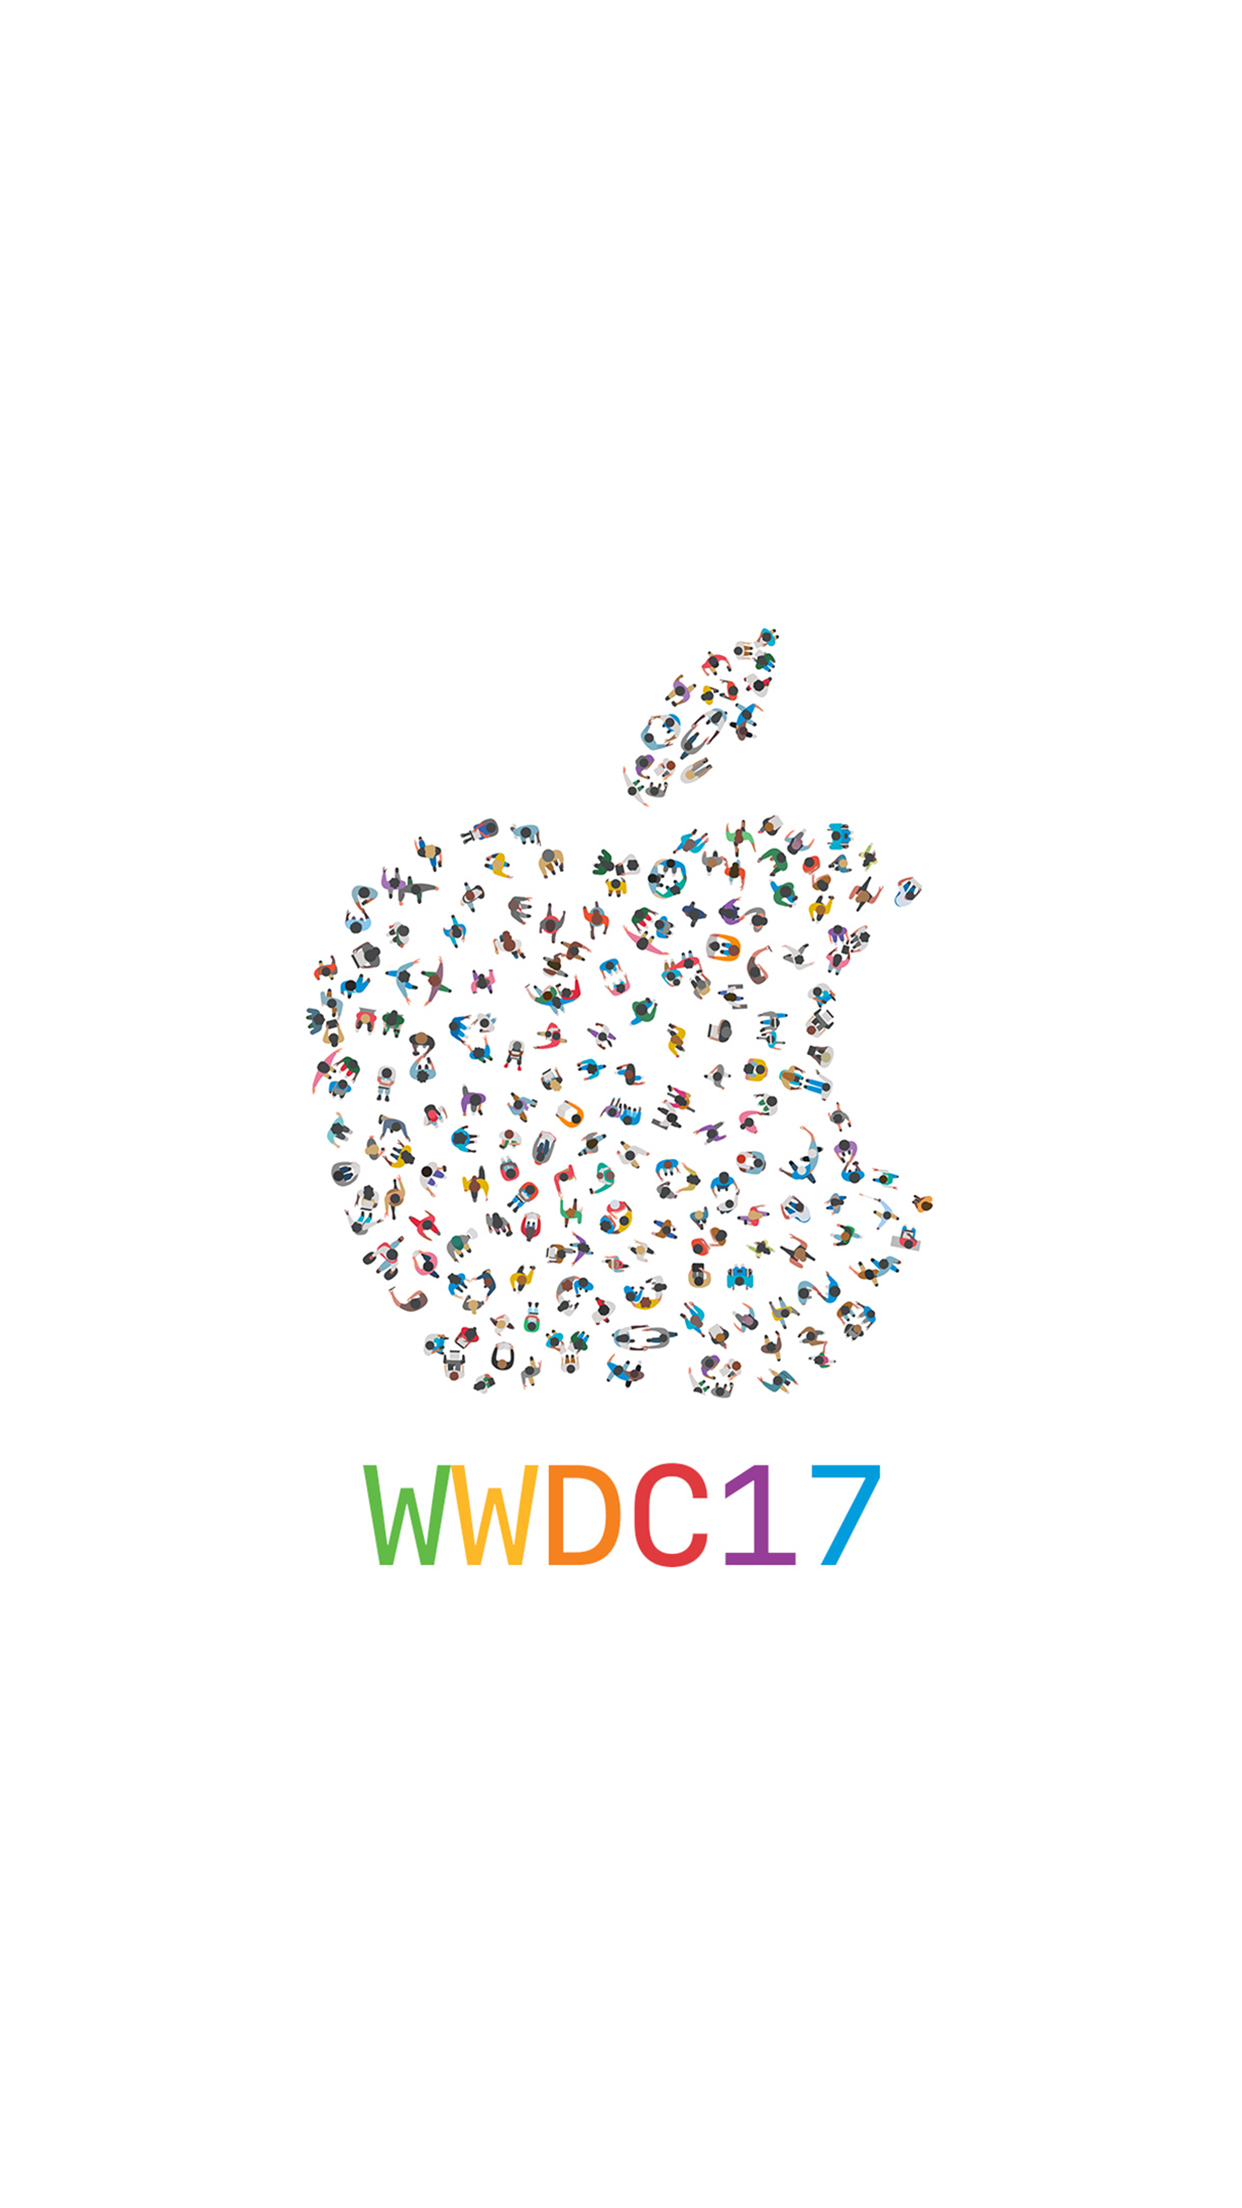 WWDC 2017 3 3Wallpapers iPhone Parallax WWDC 2017 : 3